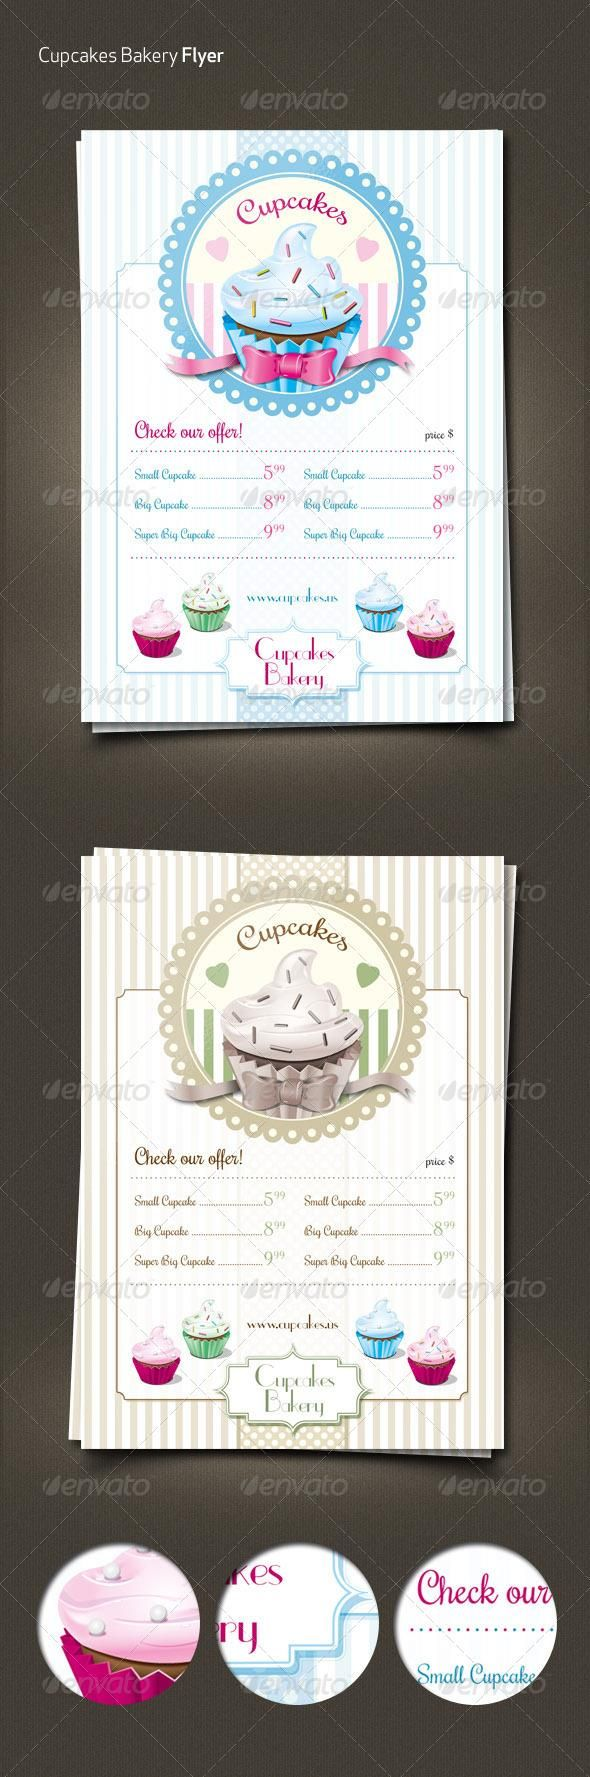 cupcakes retro menu flyer more menu and food menu template ideas. Black Bedroom Furniture Sets. Home Design Ideas